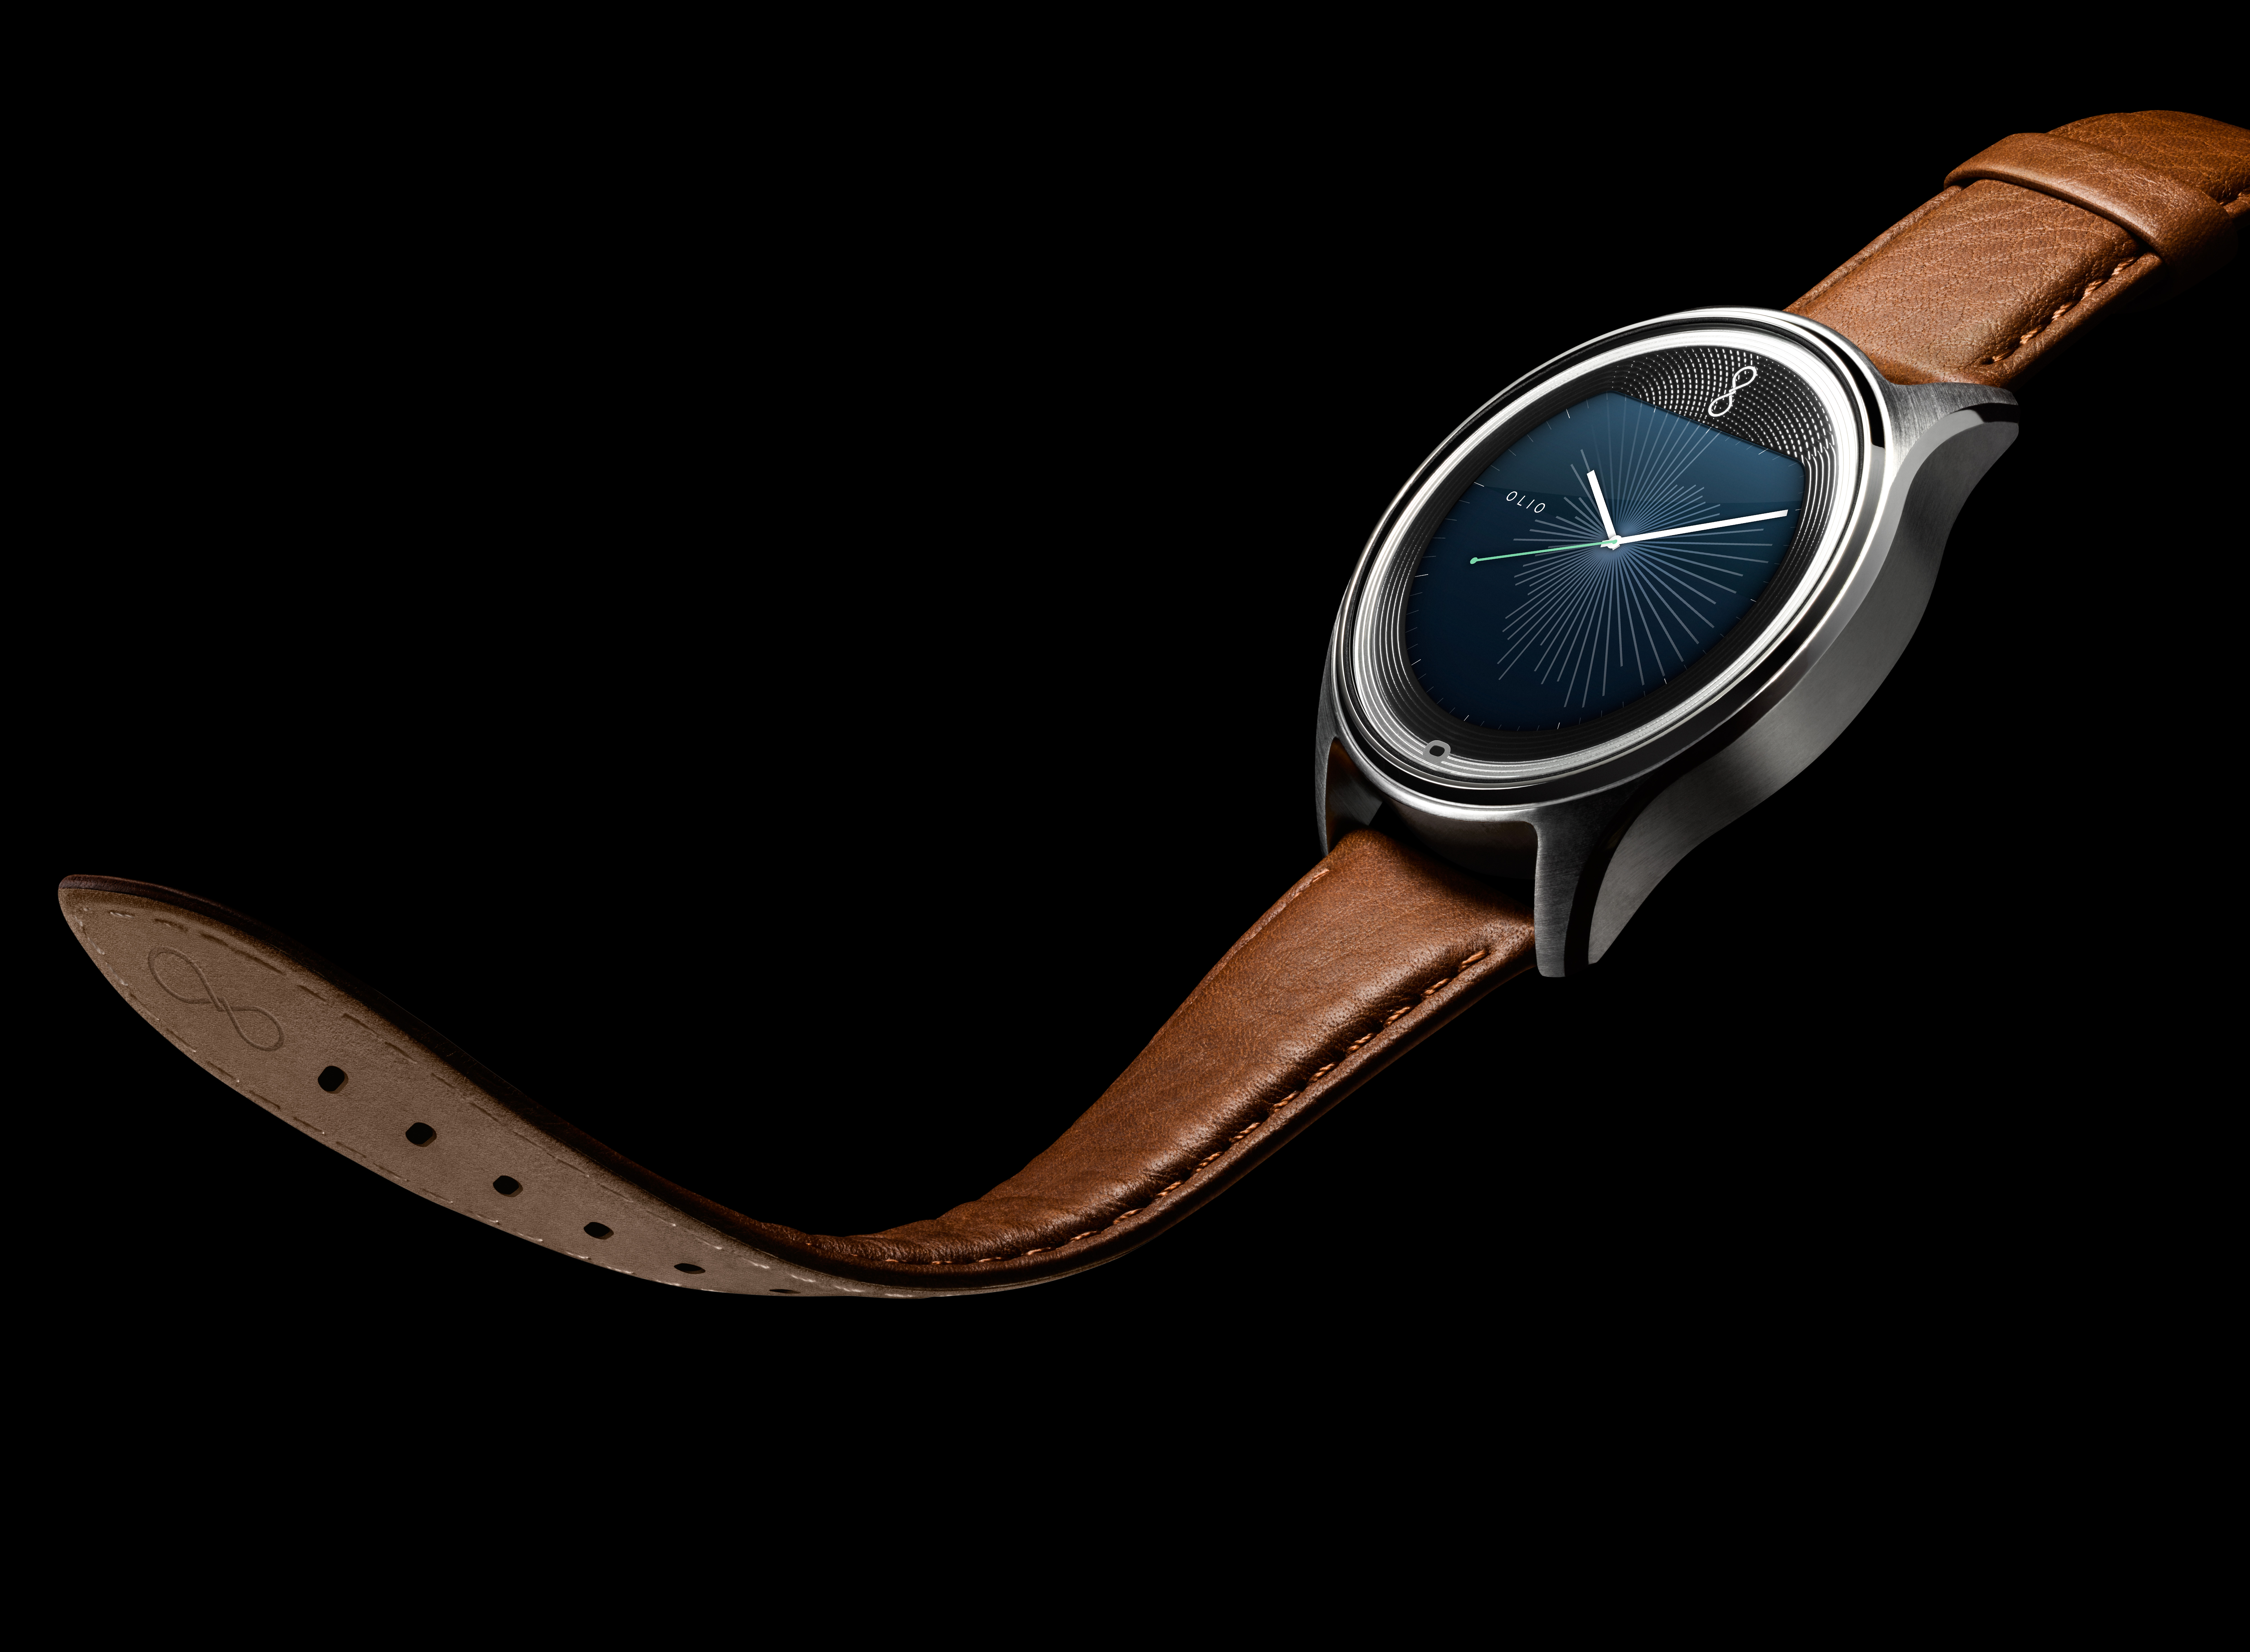 A smartwatch from Olio Devices